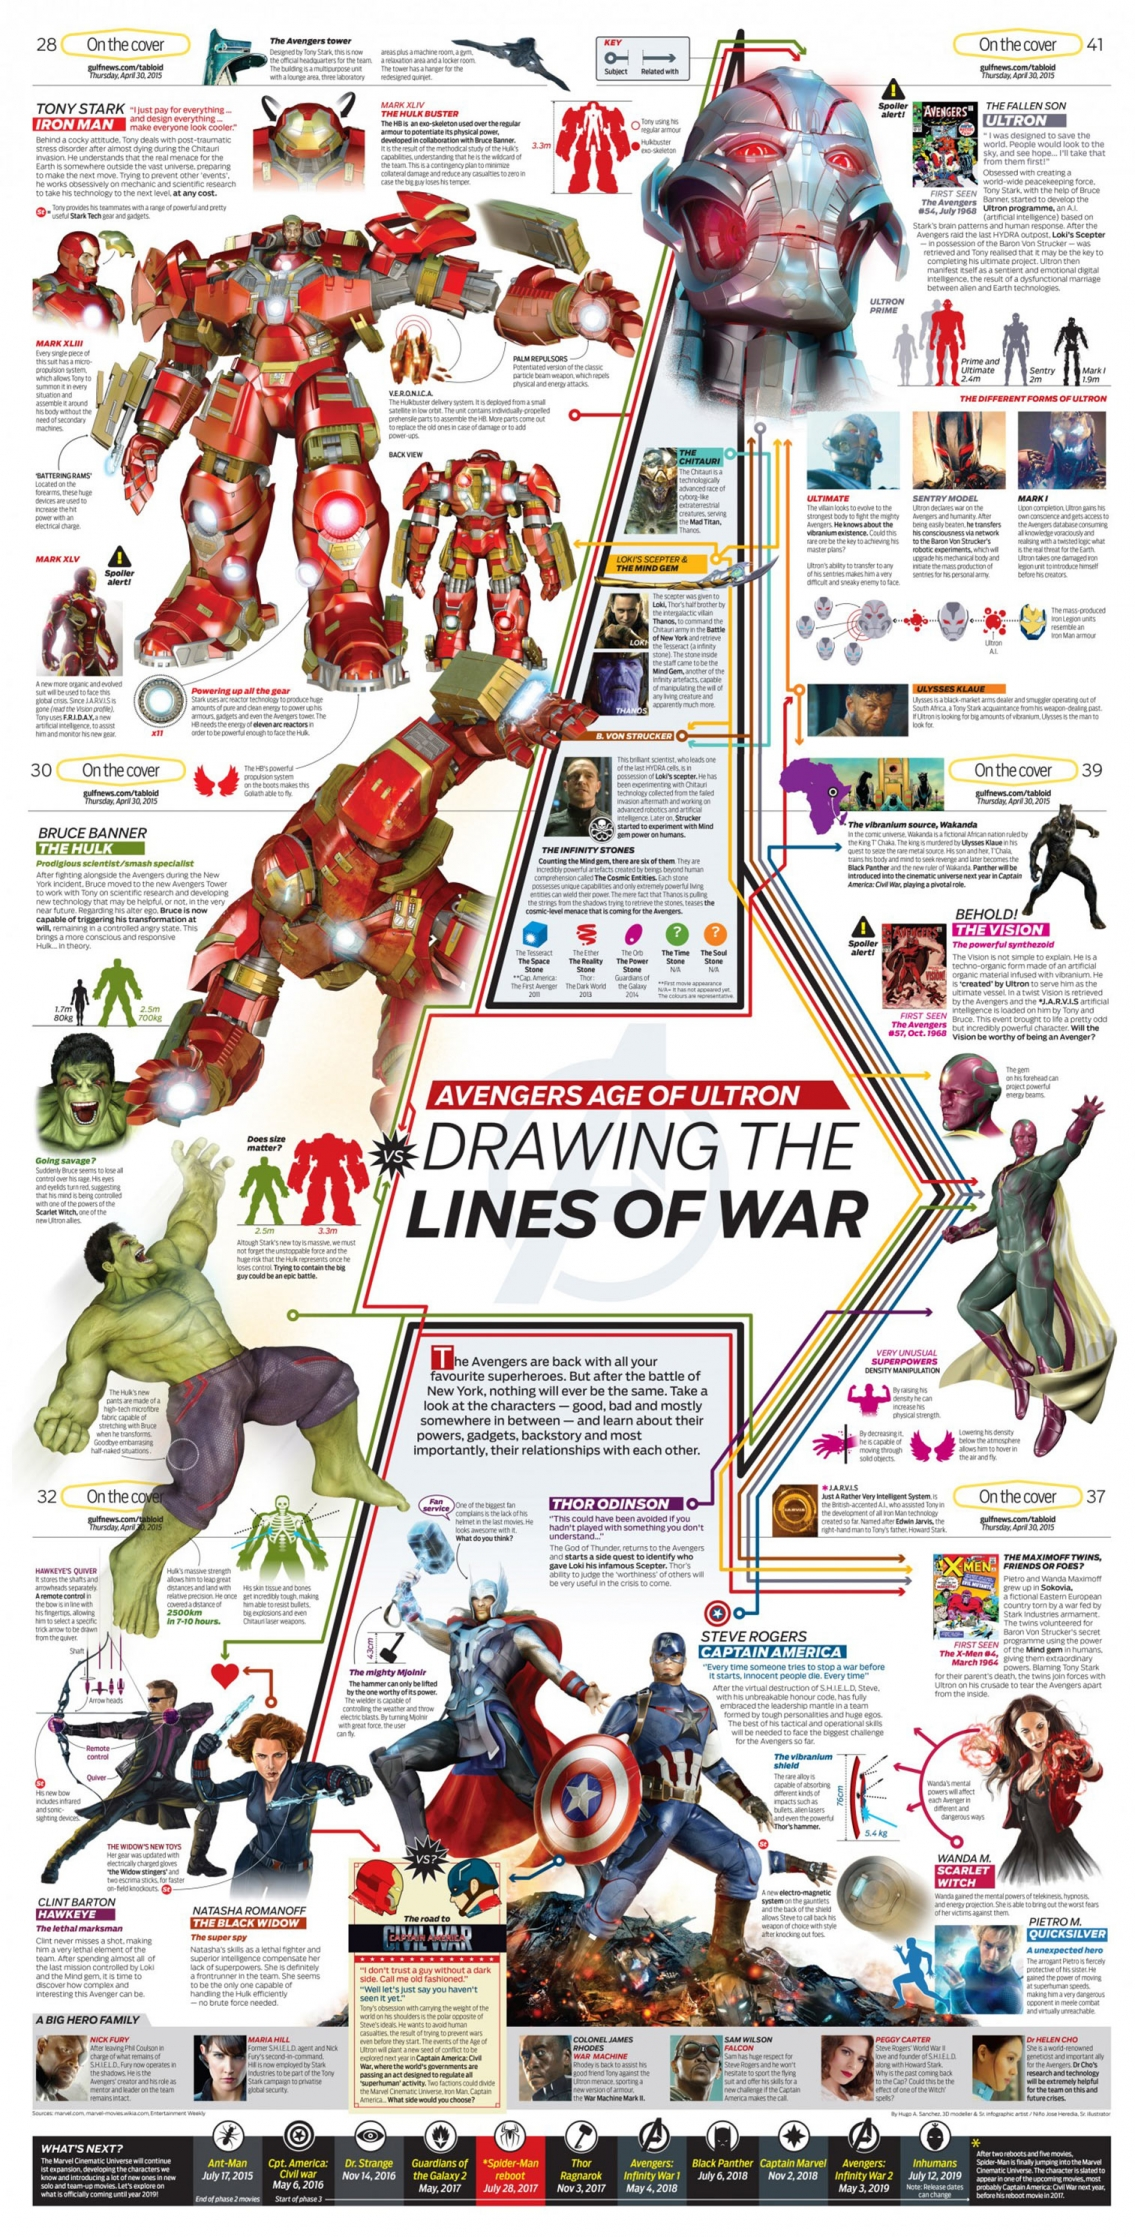 Avengers Age of Ultron Movie Infographic